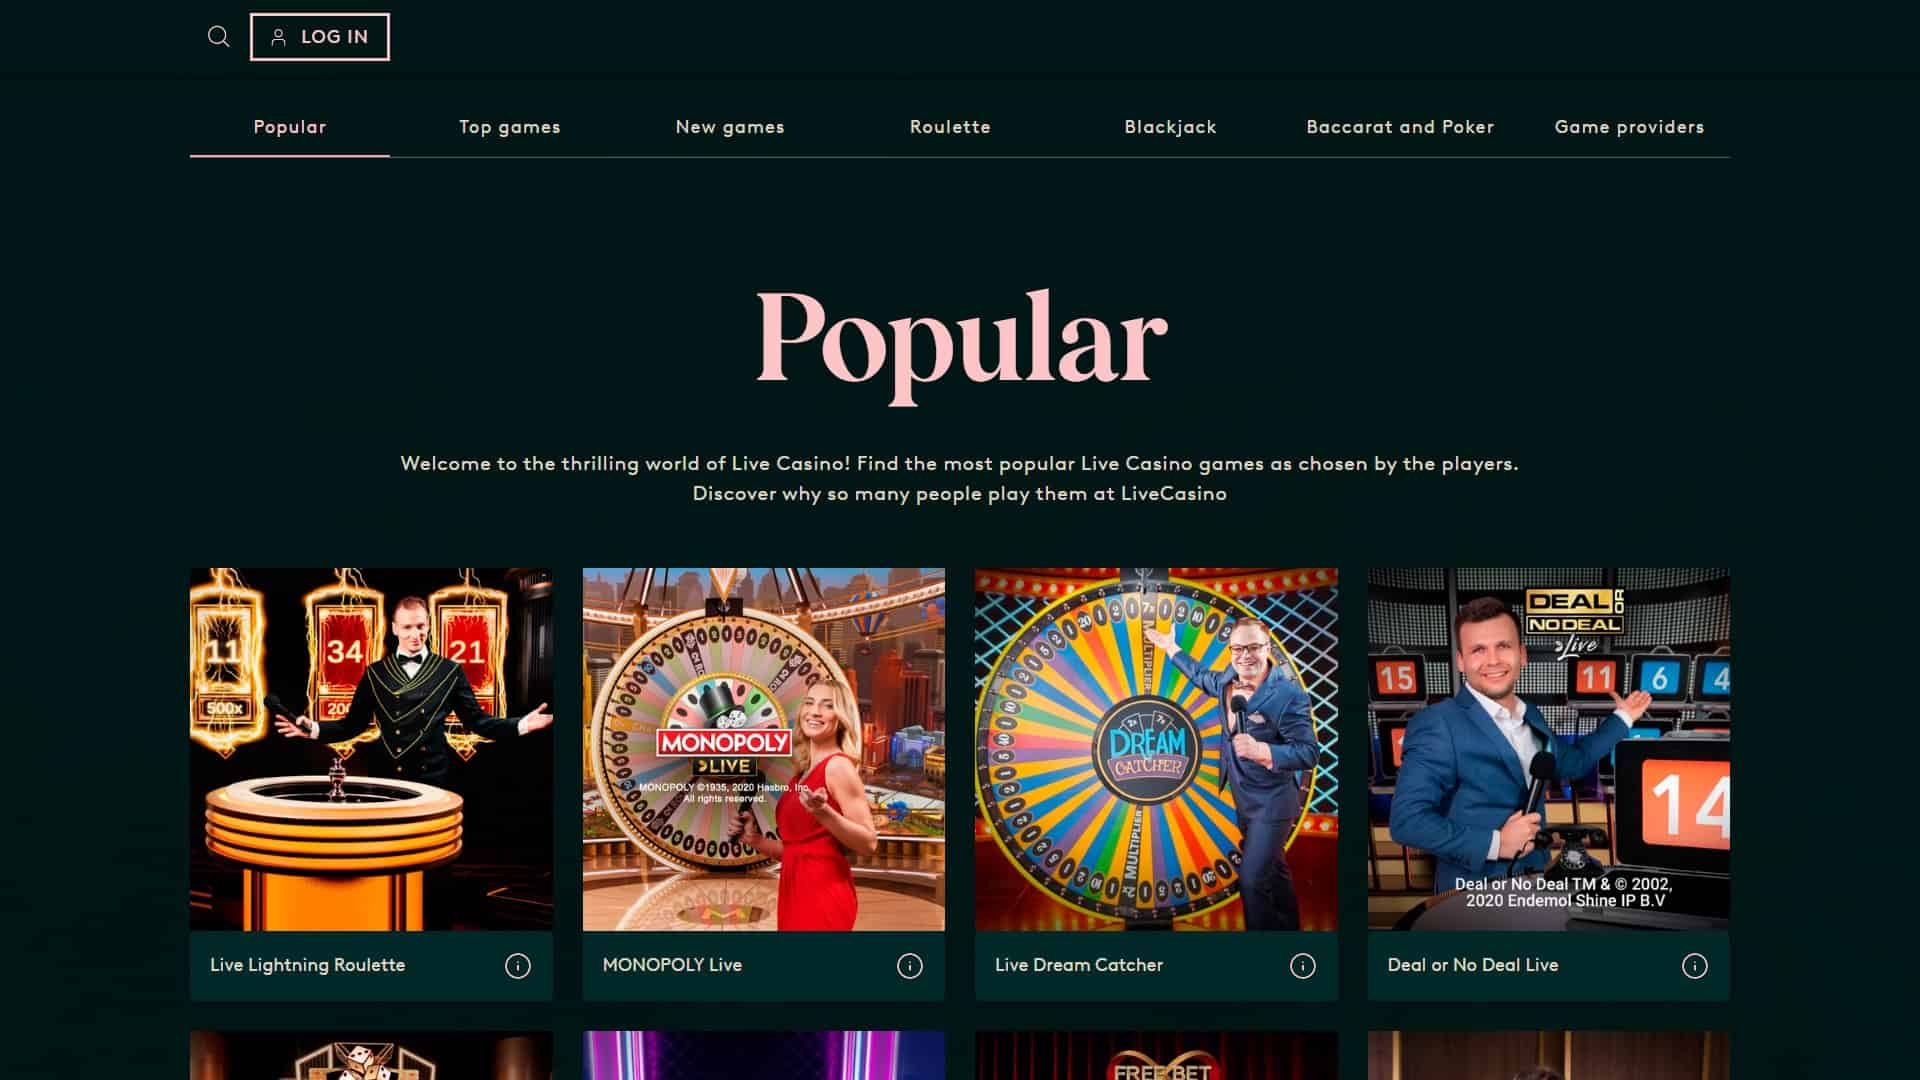 LeoVegas Launches Two Live Casinos